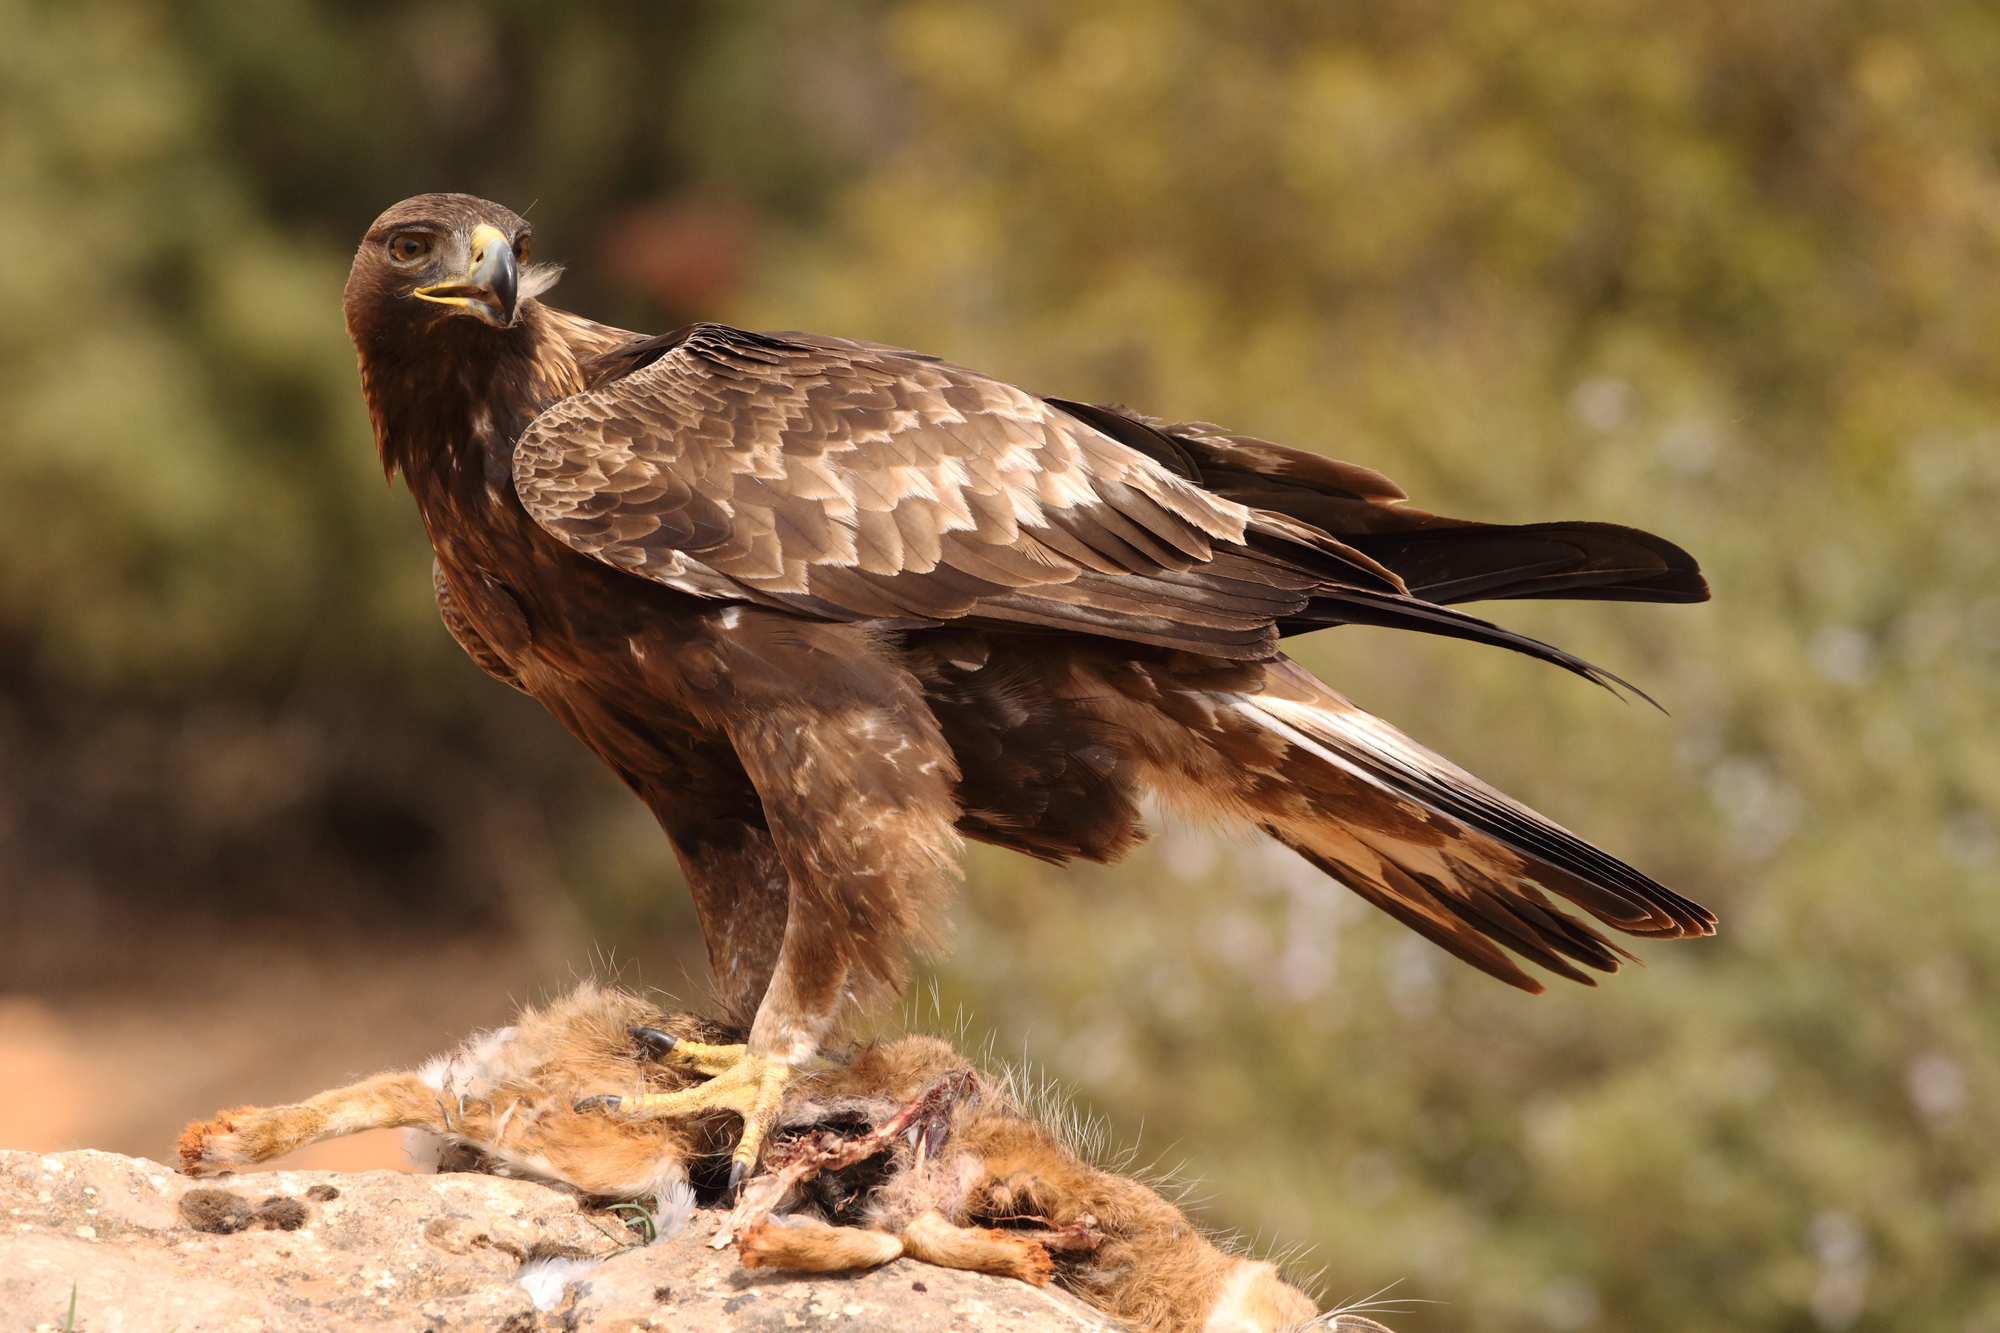 A hawk eating a rodent